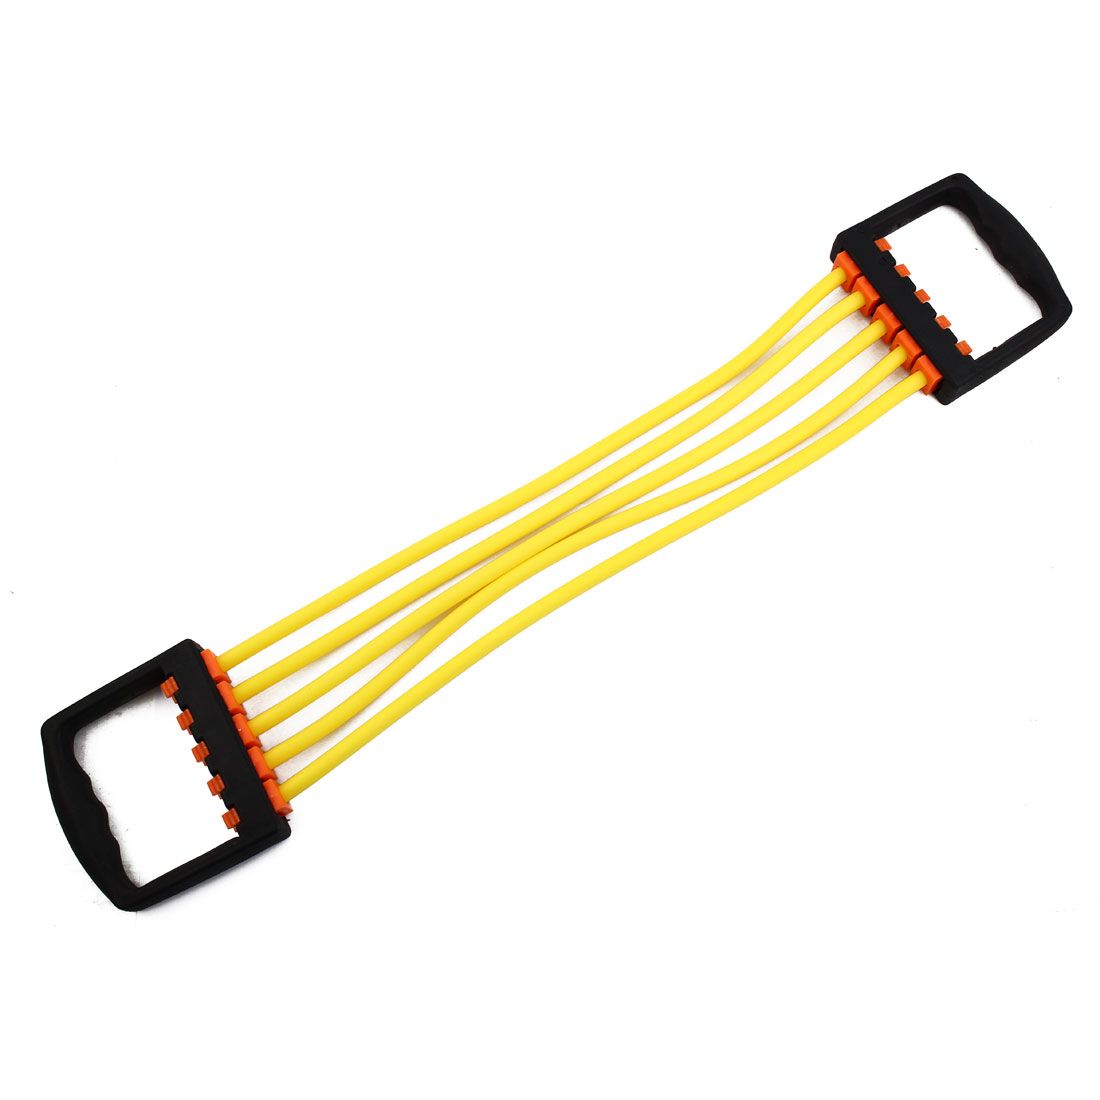 Sport Stretchy Powerlifting 5 Resistance Tube Strength Training Rope Hose Yellow